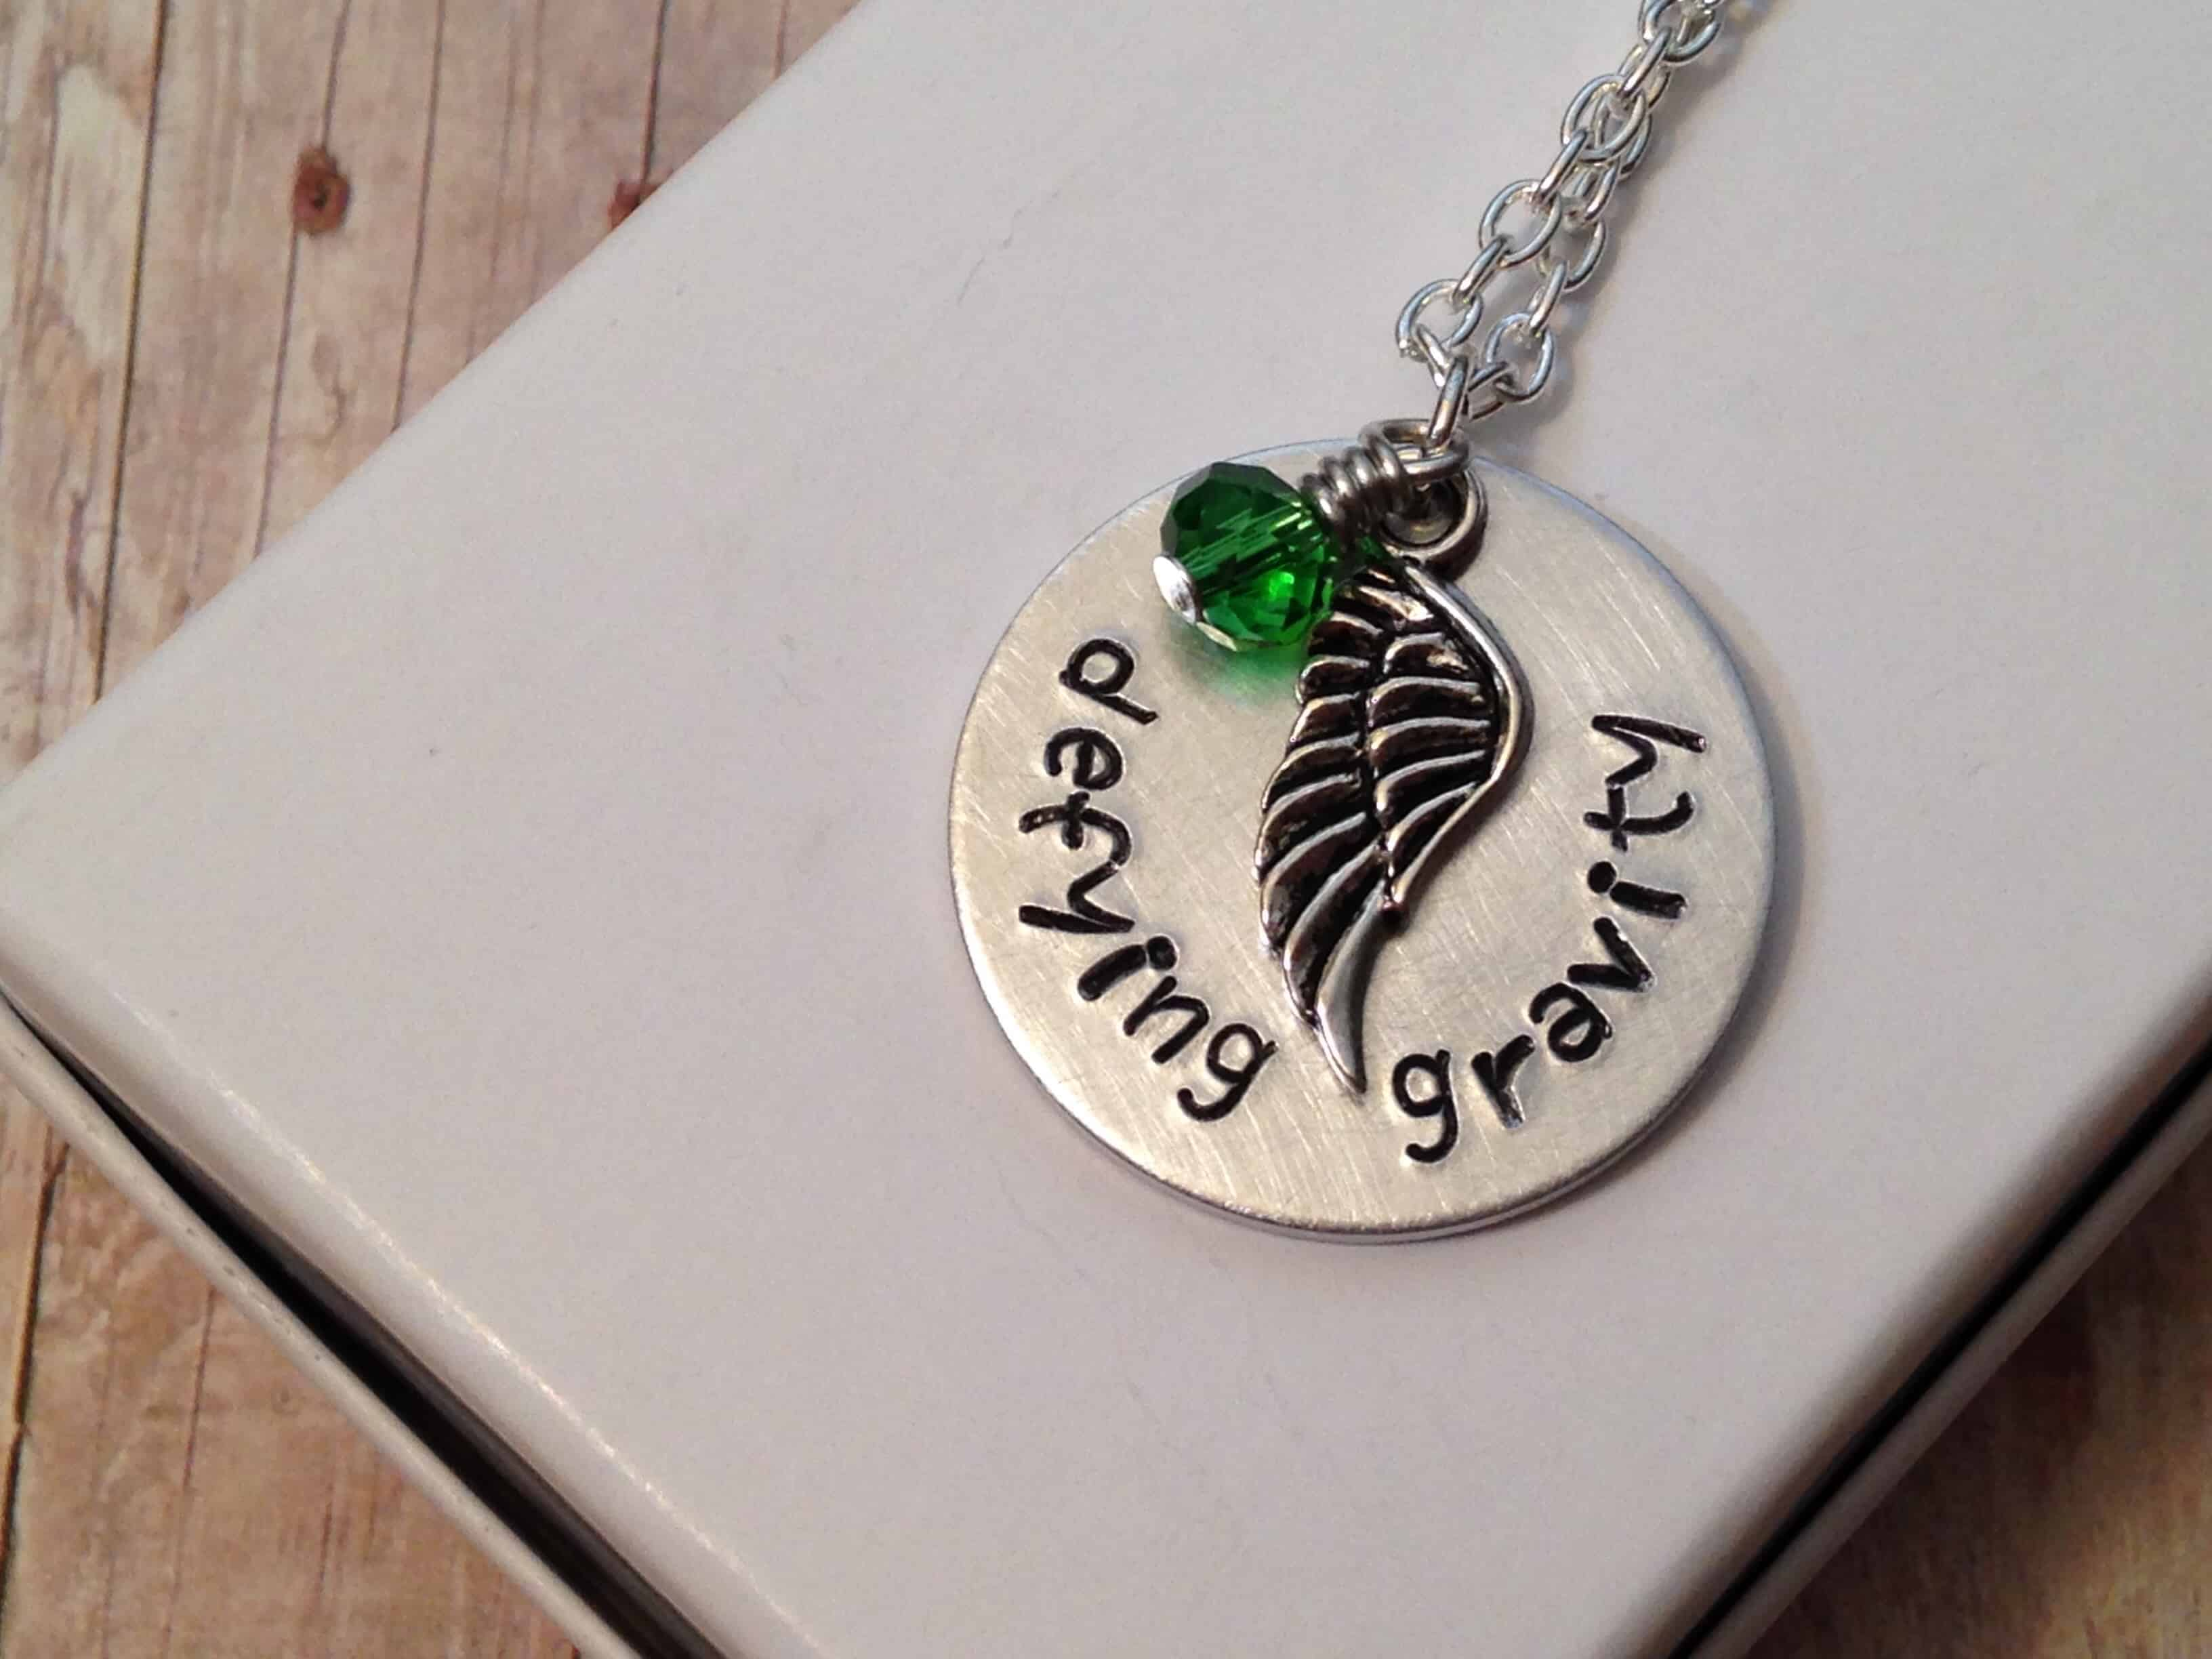 silver necklace with pendant with half wing and green jewel that says defying gravity #jewelry #etsy #handmade #handmadejewelry